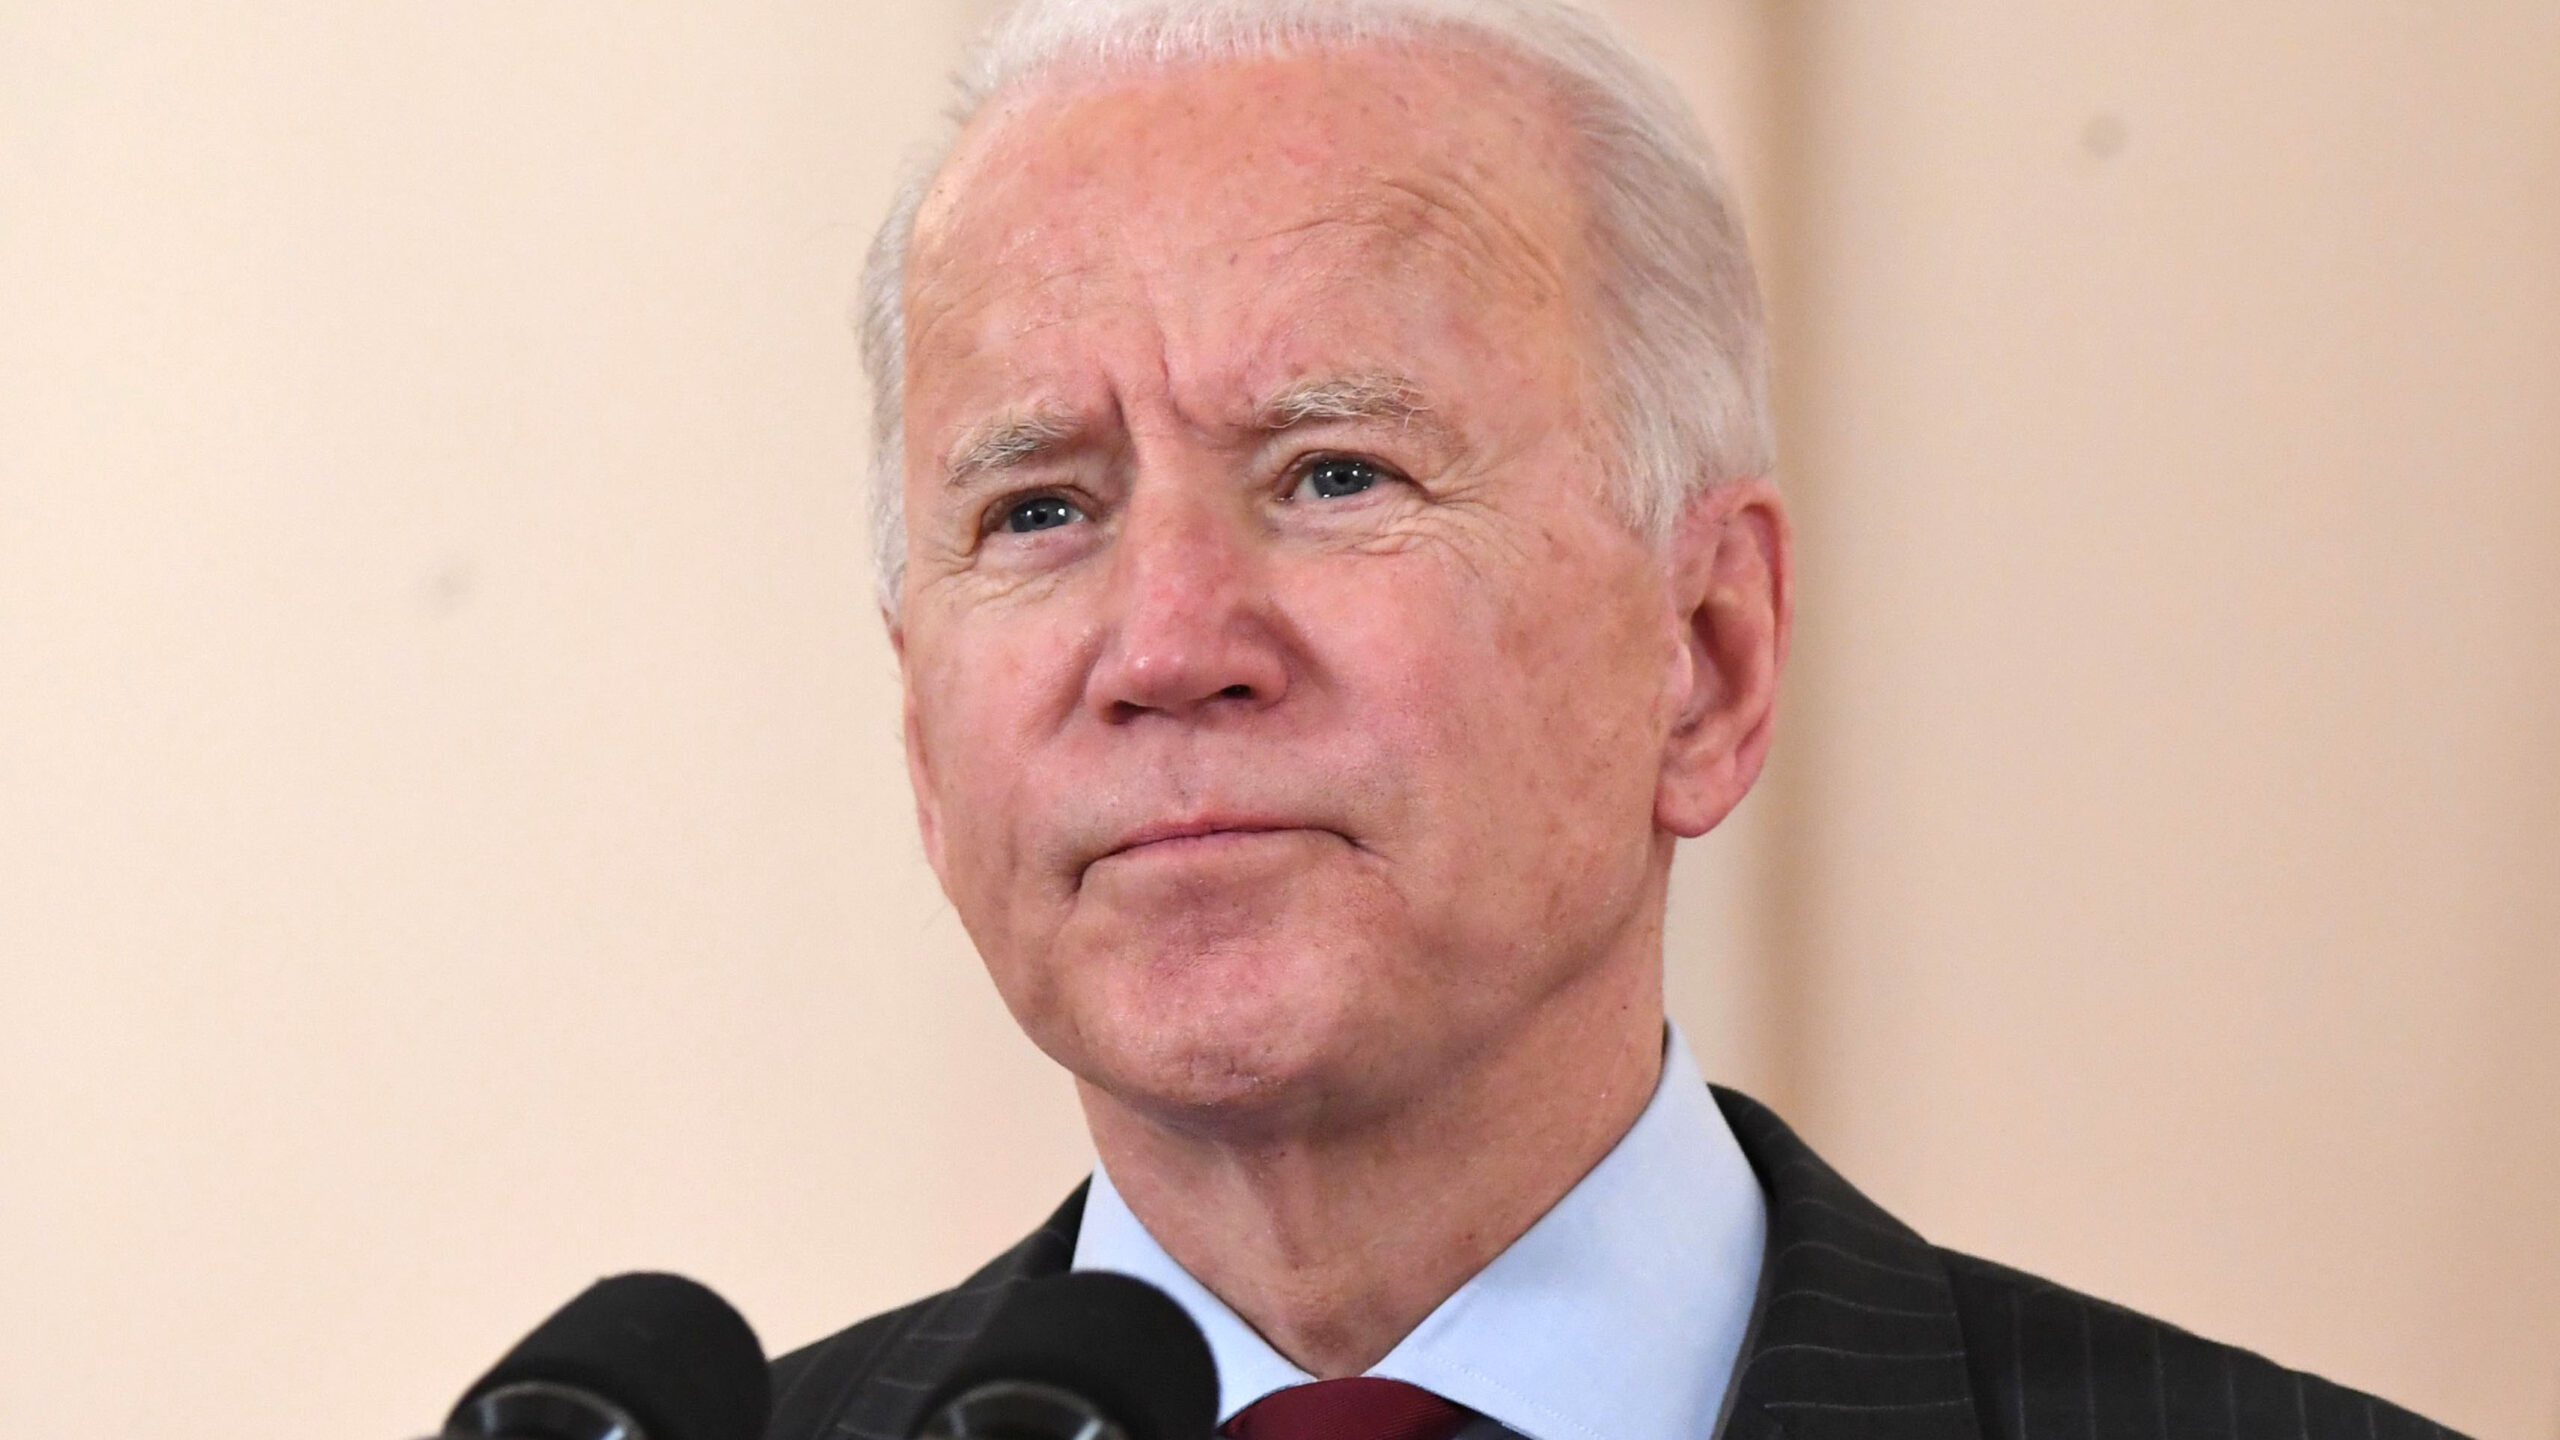 Russia's Enemies, Critics Blast Biden For Not Halting Russian Pipeline Like Trump Did: 'Caved To Russia's Demands'